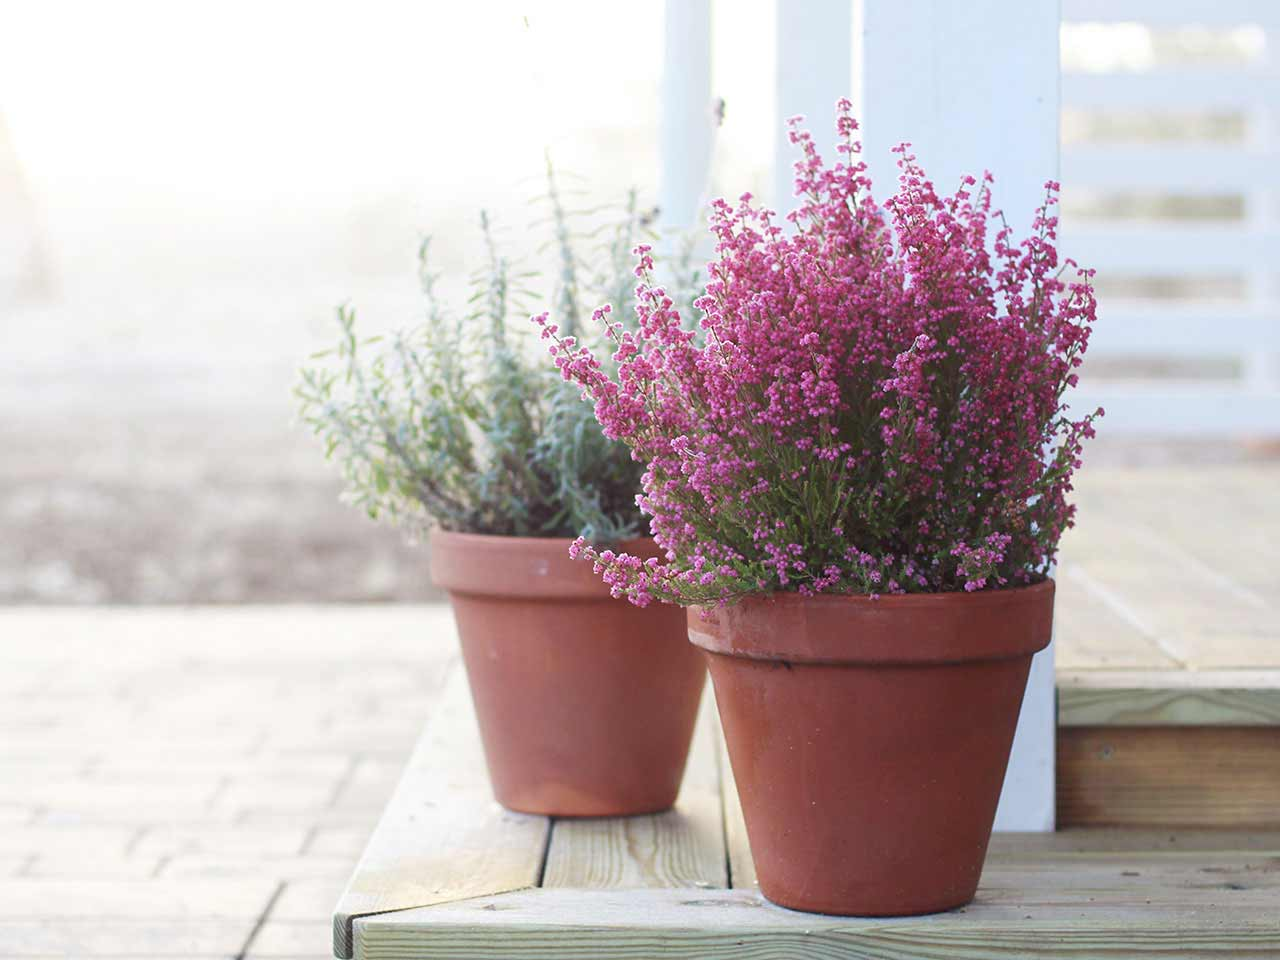 Ponk heather growing in pots